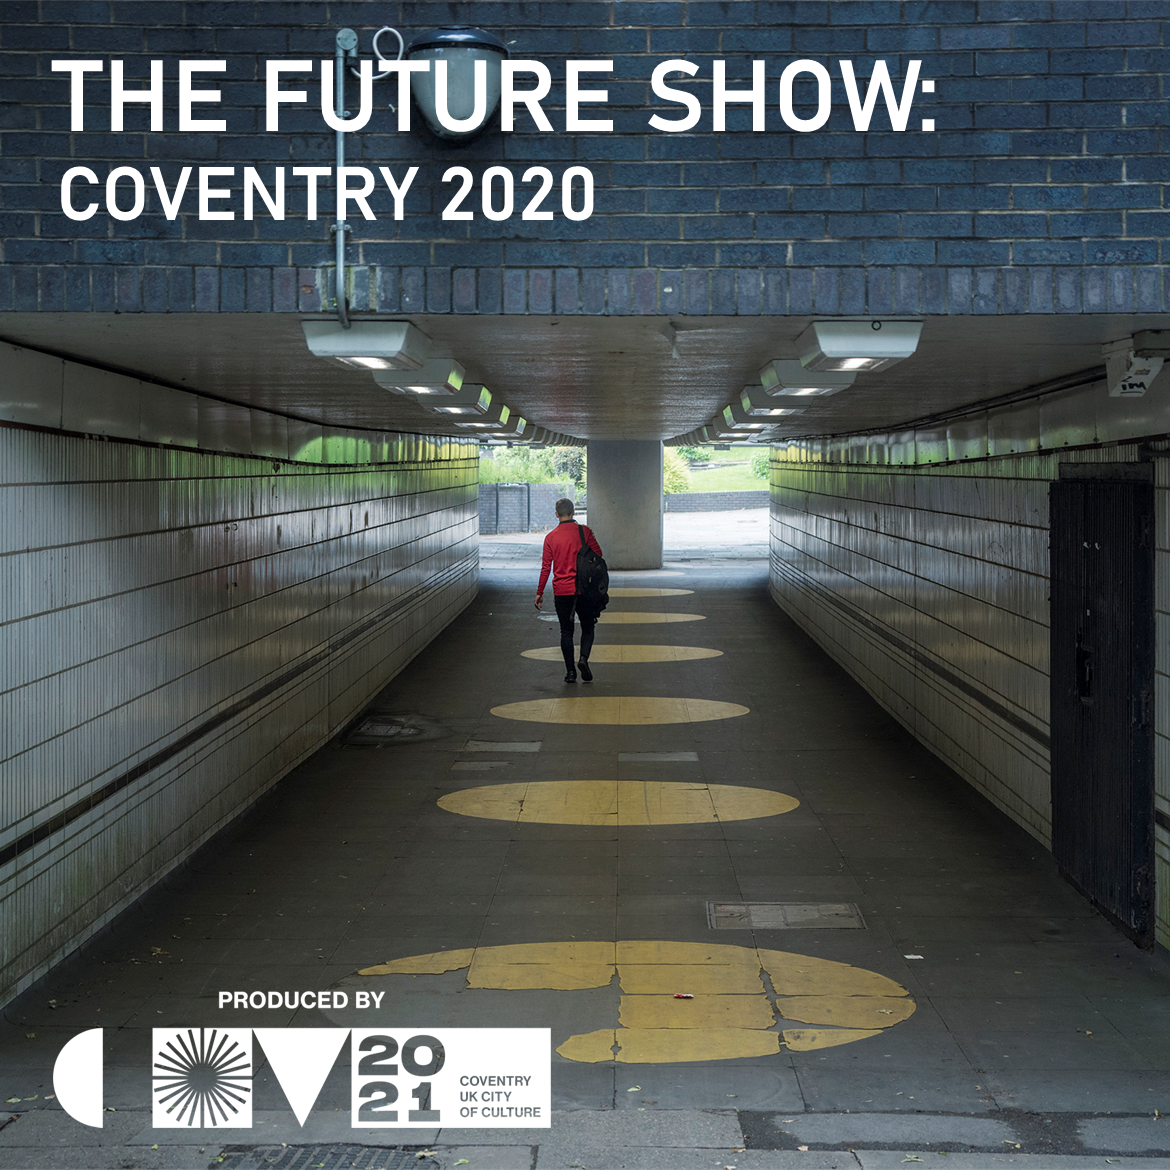 Image Credit: Andrew Brooks Photography. Man walking down subway. Above image the title reads The Future Show: Coventry 2020. Below image the logo reads Produced by Coventry UK City of Culture 2021.